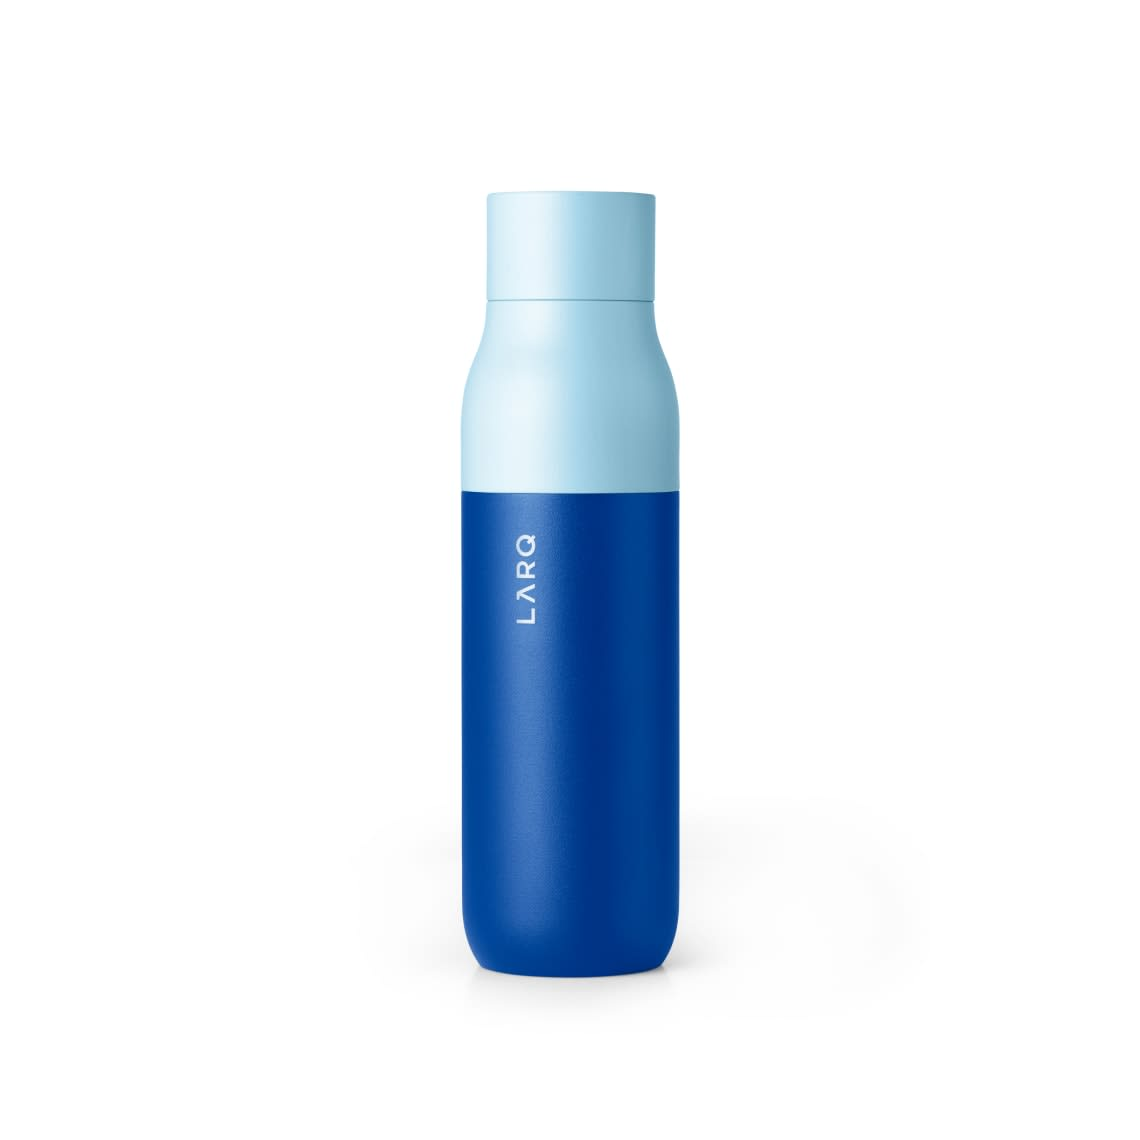 LARQ Water Bottles 500 ml/ 17oz LARQ Bottle PureVis - DG23 Edition